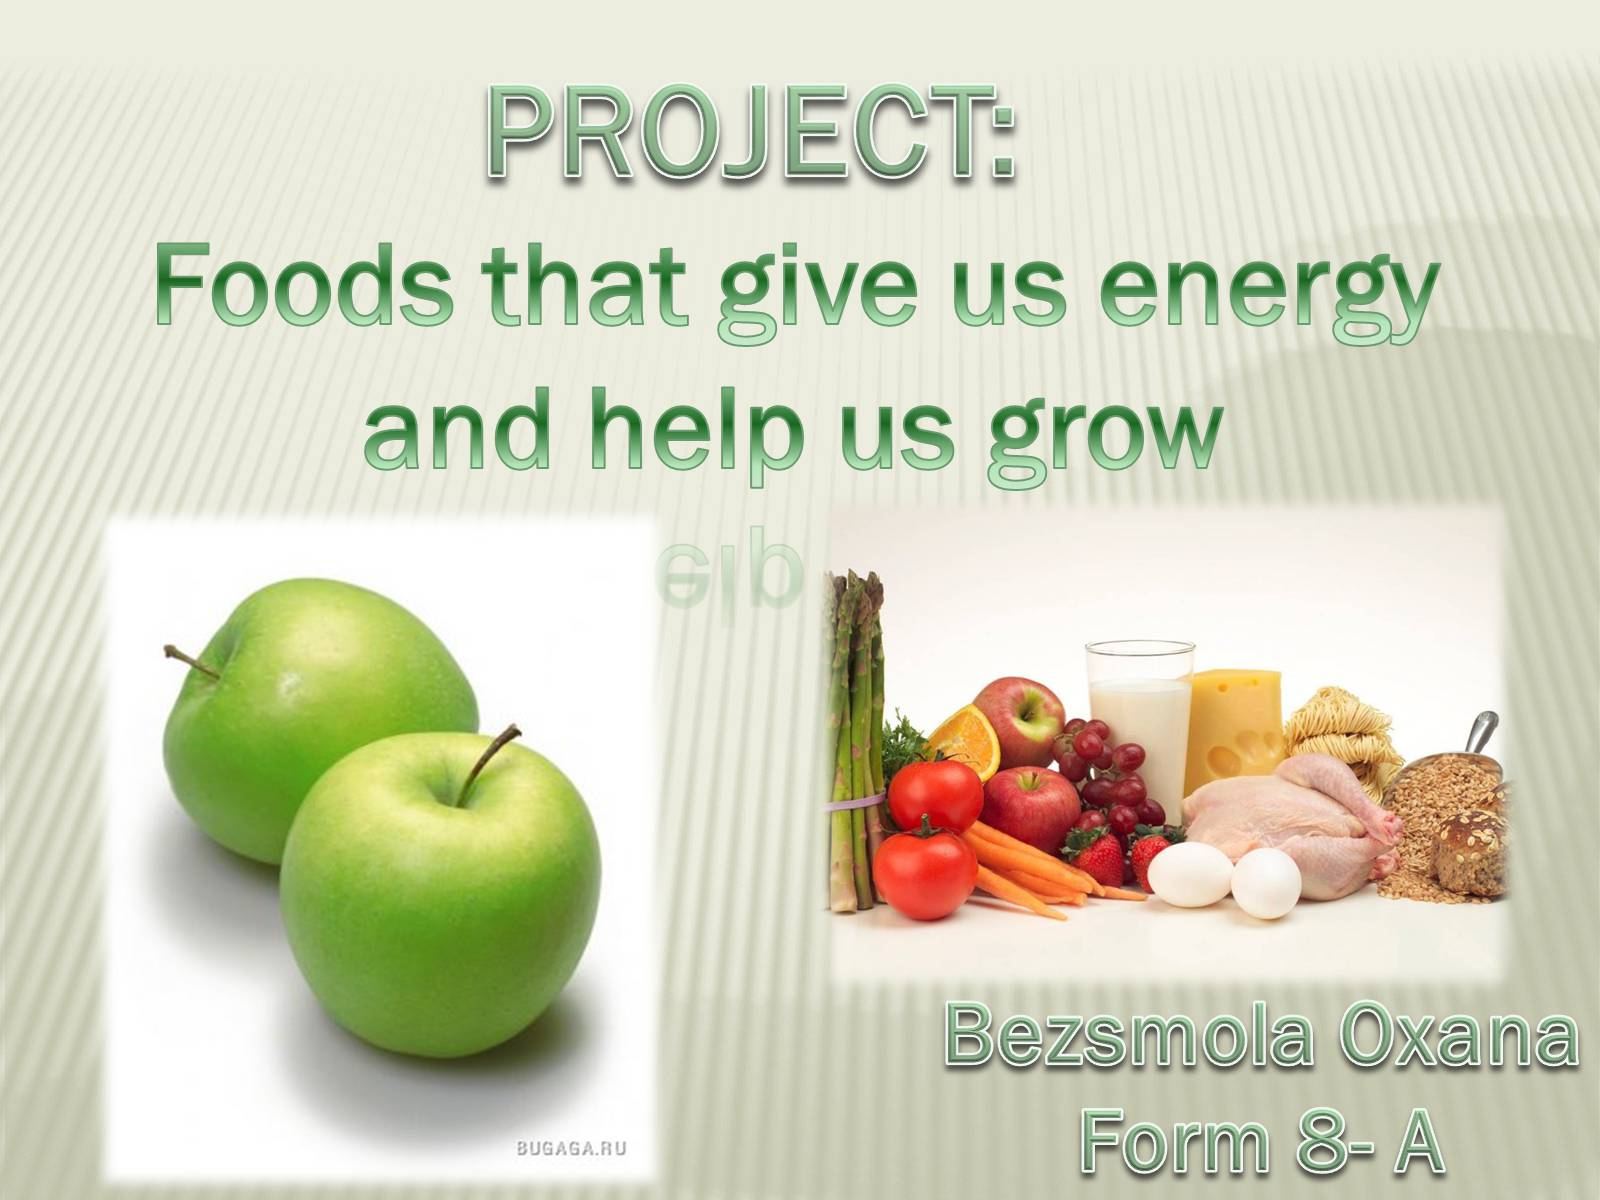 Презентація на тему «Foods that give us energy and help us grow»